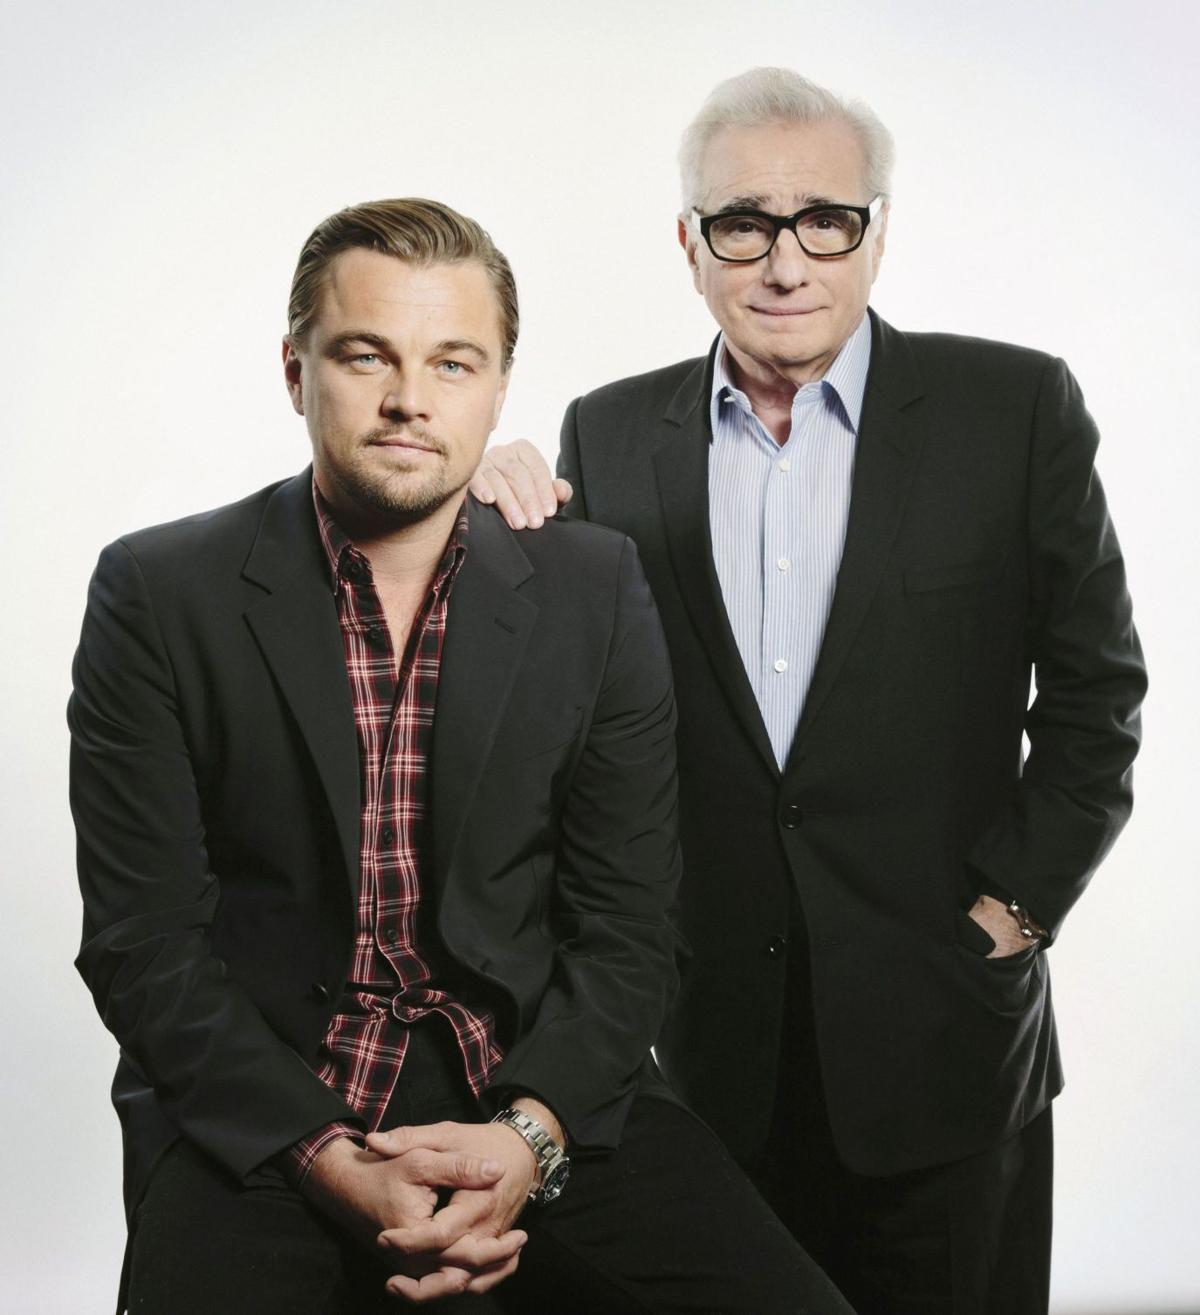 Martin Scorsese and Leonardo DiCaprio team up again for 'The Wolf of Wall Street'